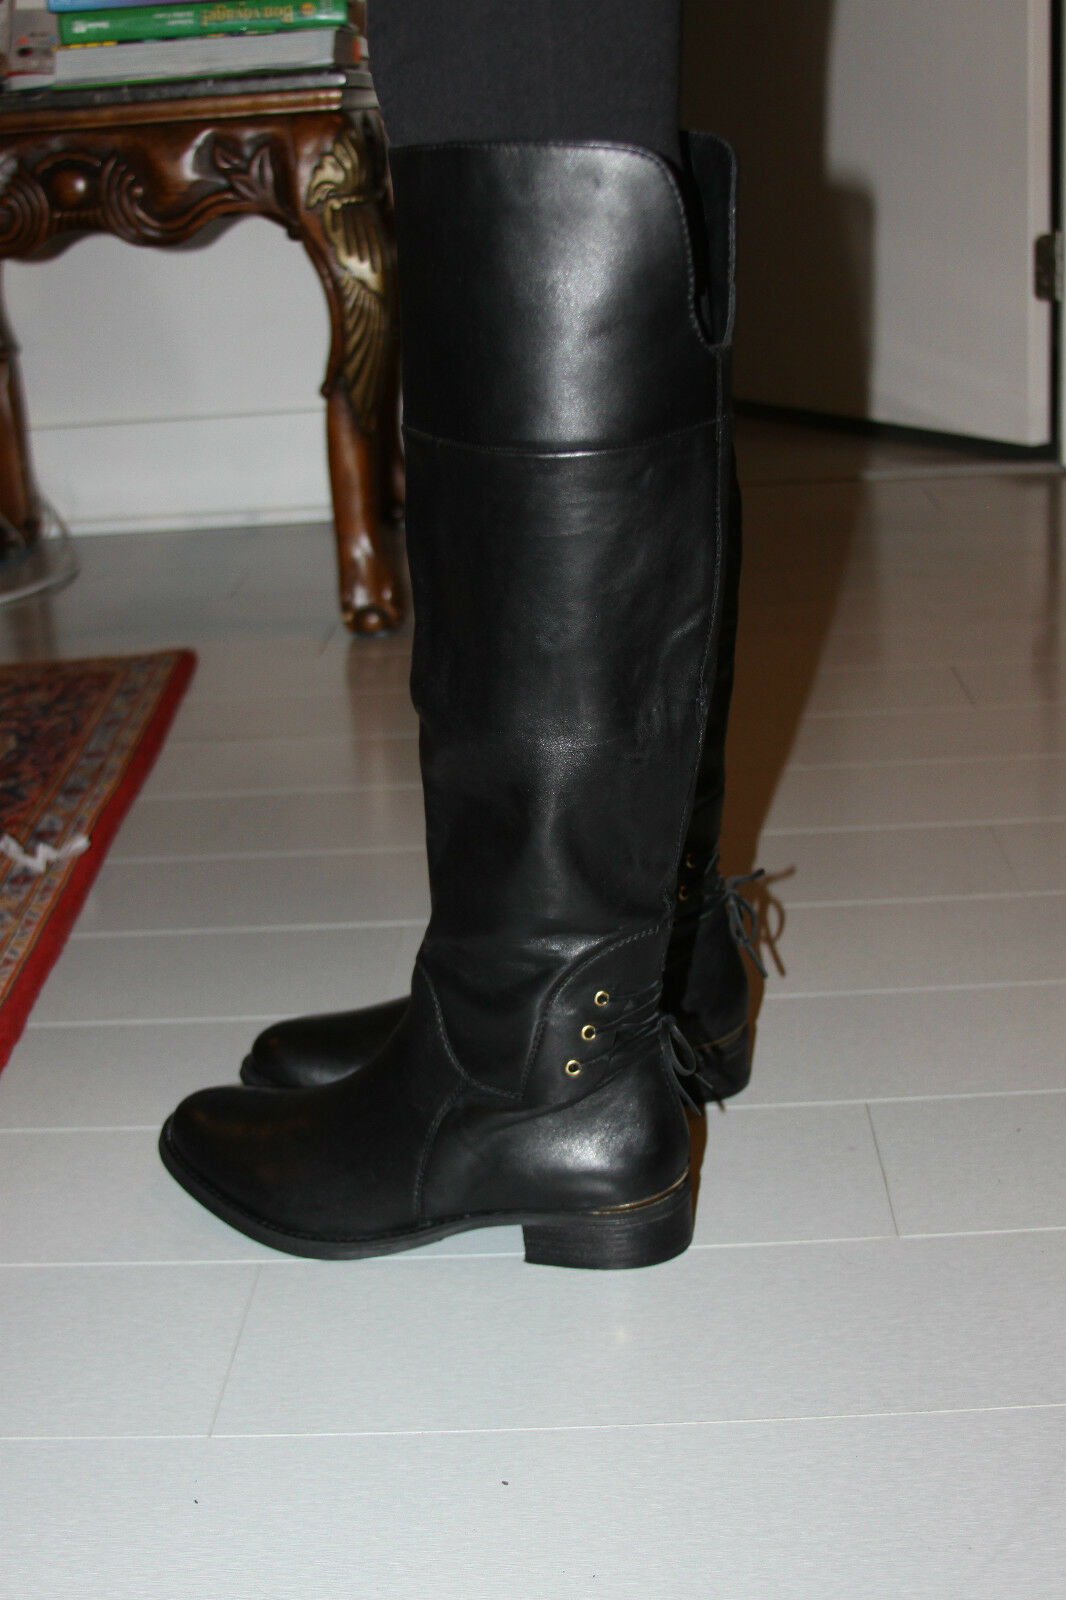 STEVE MADDEN NERVES BLACK LEATHER 7 KNEE BOOT SIZE 7 LEATHER bda96c